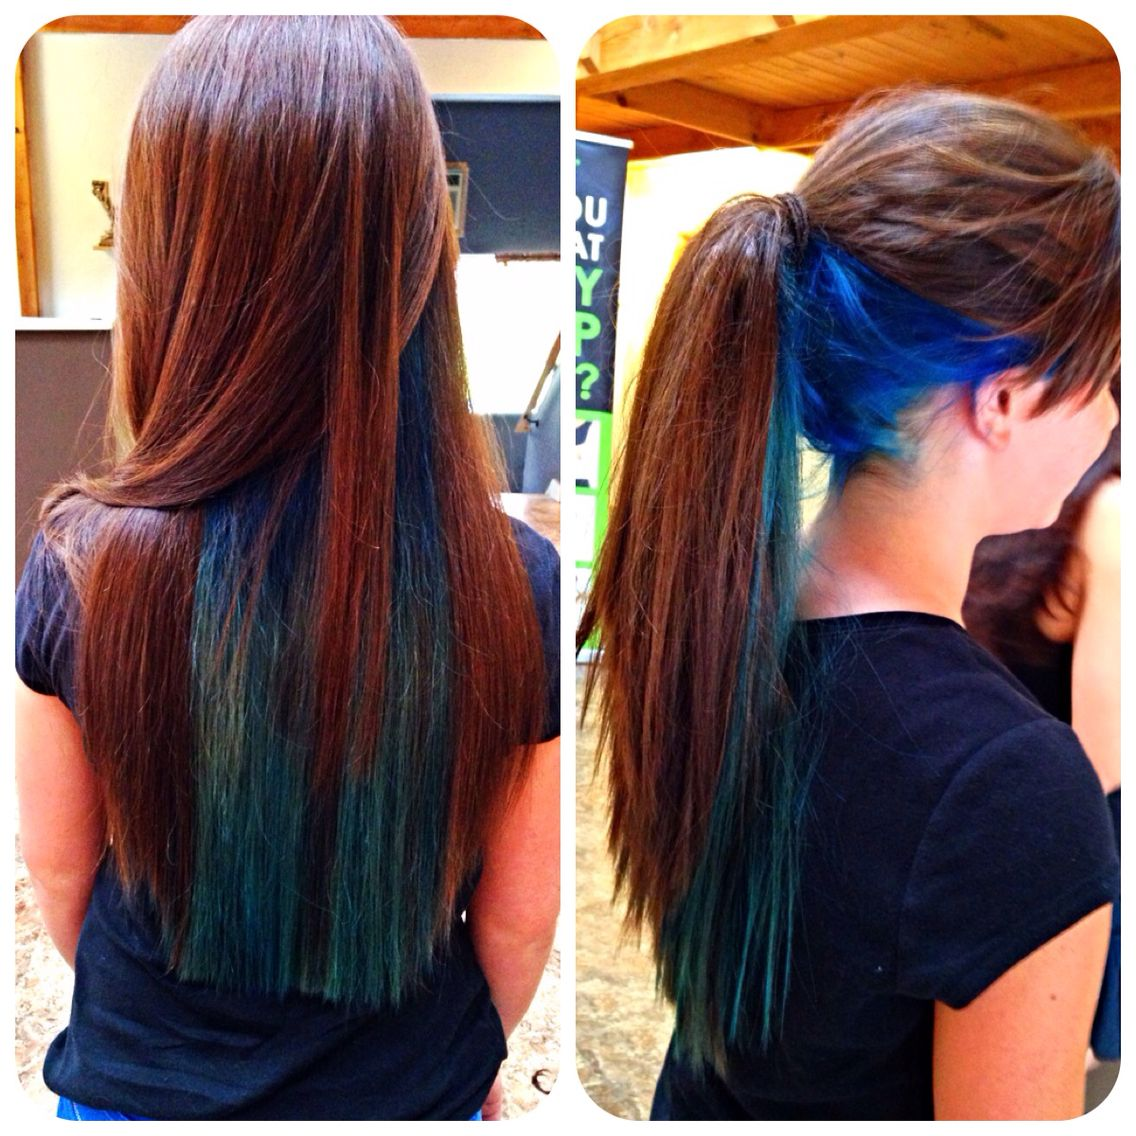 Blue And Teal Under Layer Bright Longhair Colors Except With Purples Blues Instead Hair Styles Long Hair Styles Peekaboo Hair